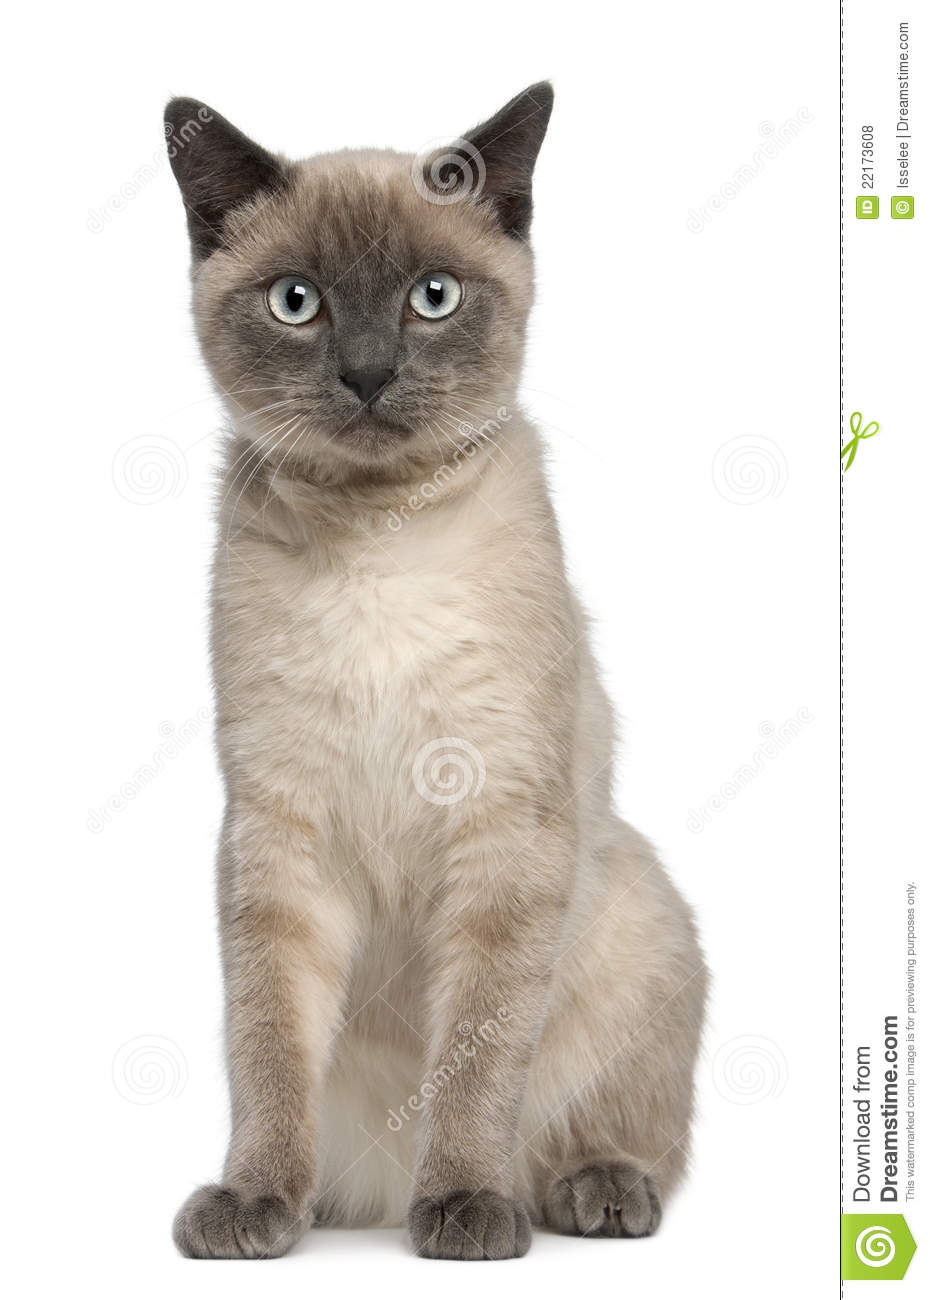 Siamese Kitten, 6 Months Old, Sitting Royalty Free Stock Photos ...